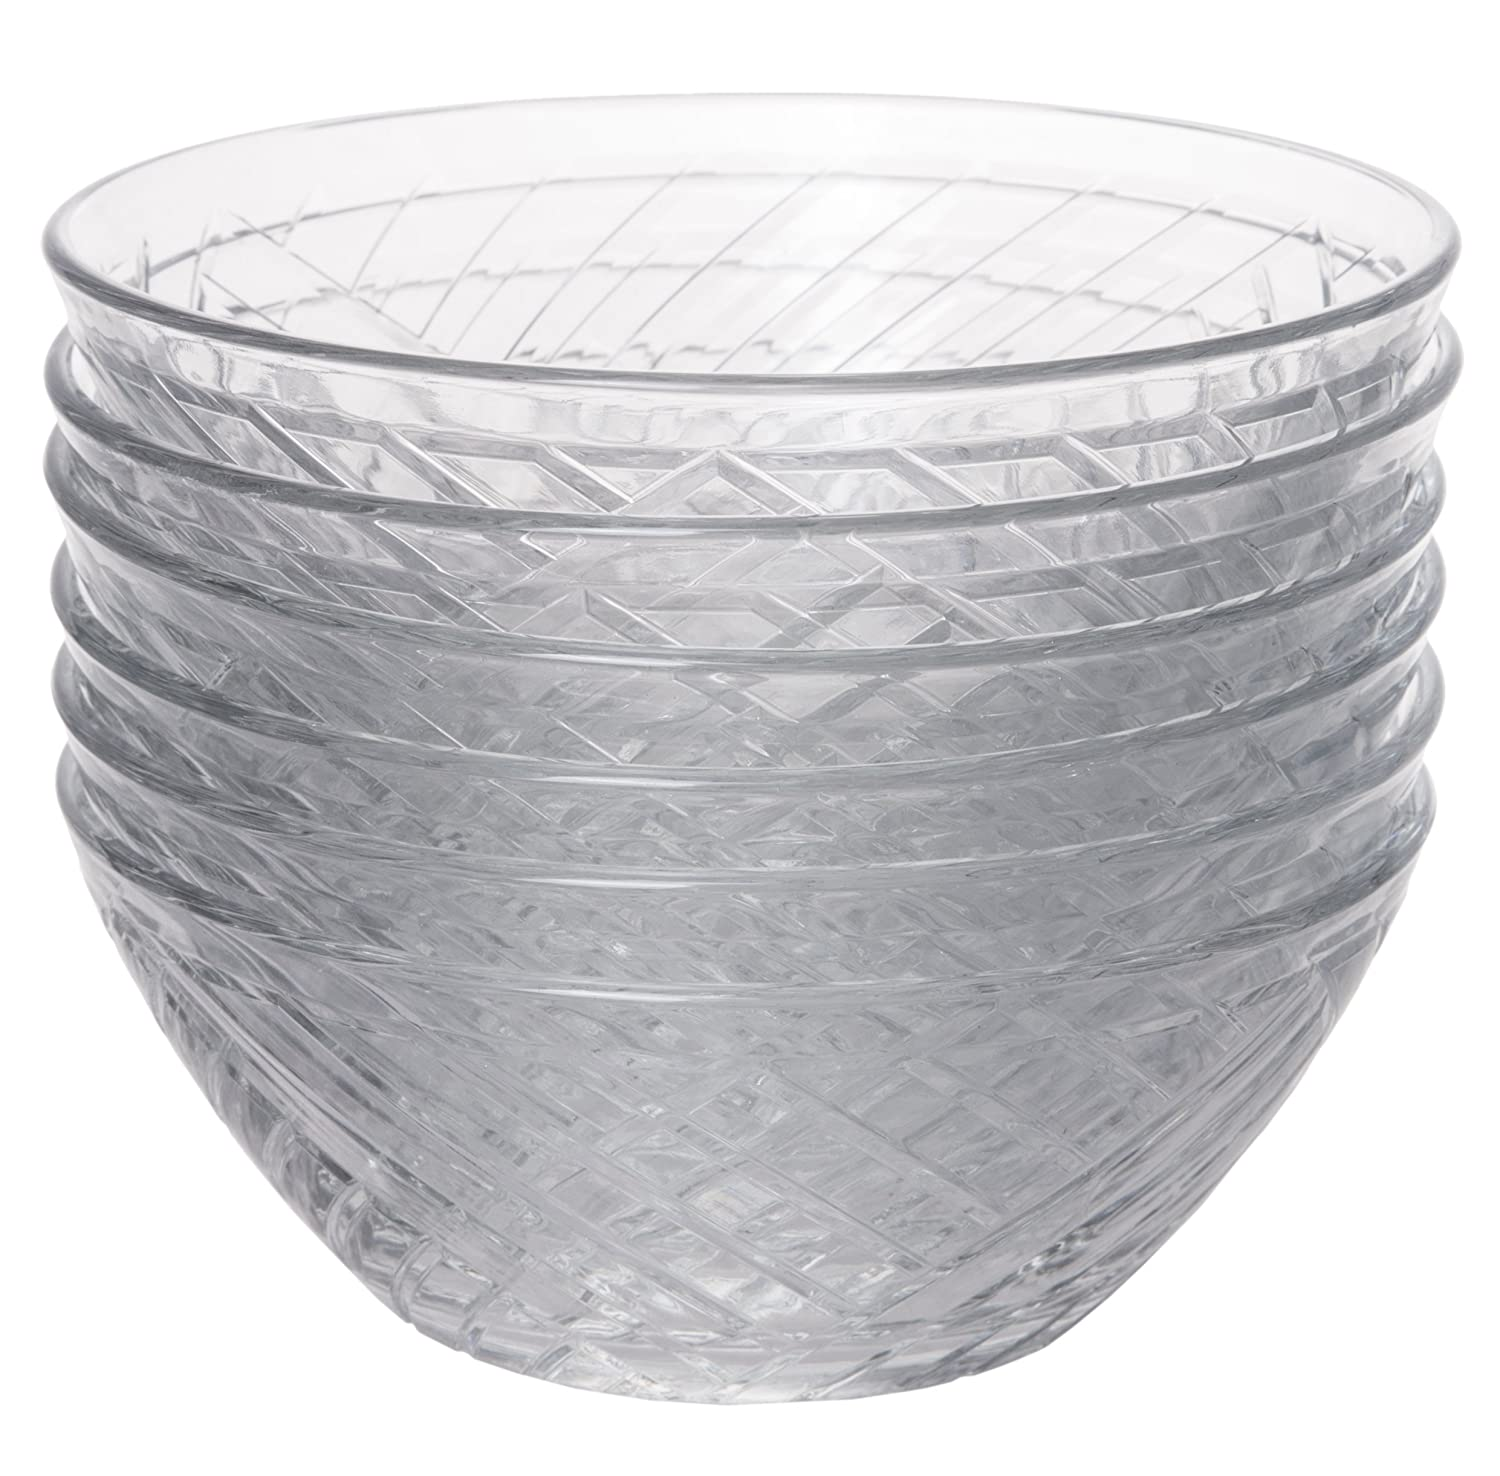 10 oz. Crystal Clear Set of 6 Mini Glass Multipurpose Prep and Serving Bowls 5-inch